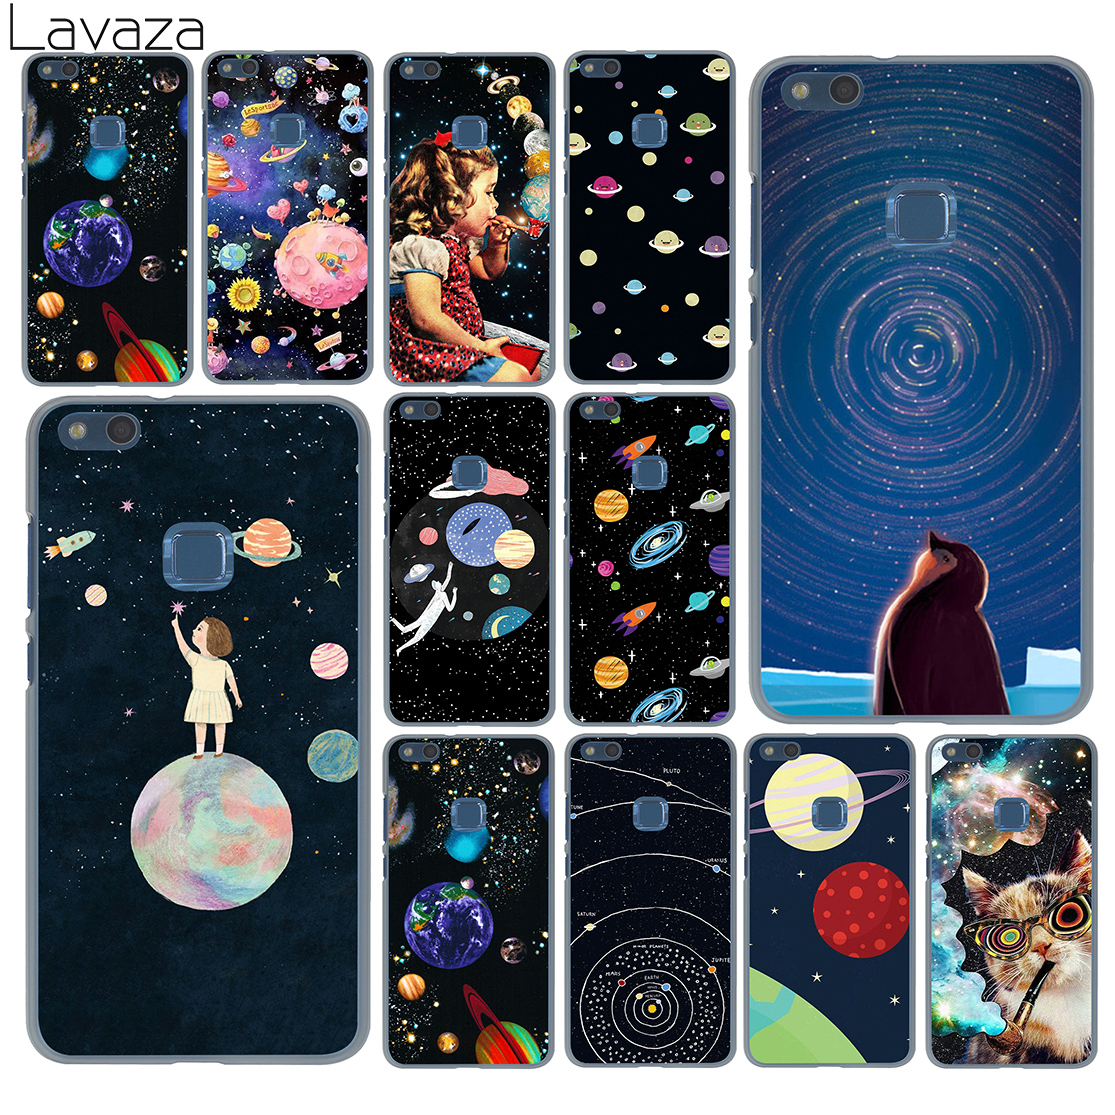 Well-Educated Lavaza Stars Moon Airship Astronaut Cat Case For Huawei P20 P9 P10 Plus P8 Mate 20 Pro 10 Lite Mini 2016 2017 P Smart 2019 Comfortable And Easy To Wear Cellphones & Telecommunications